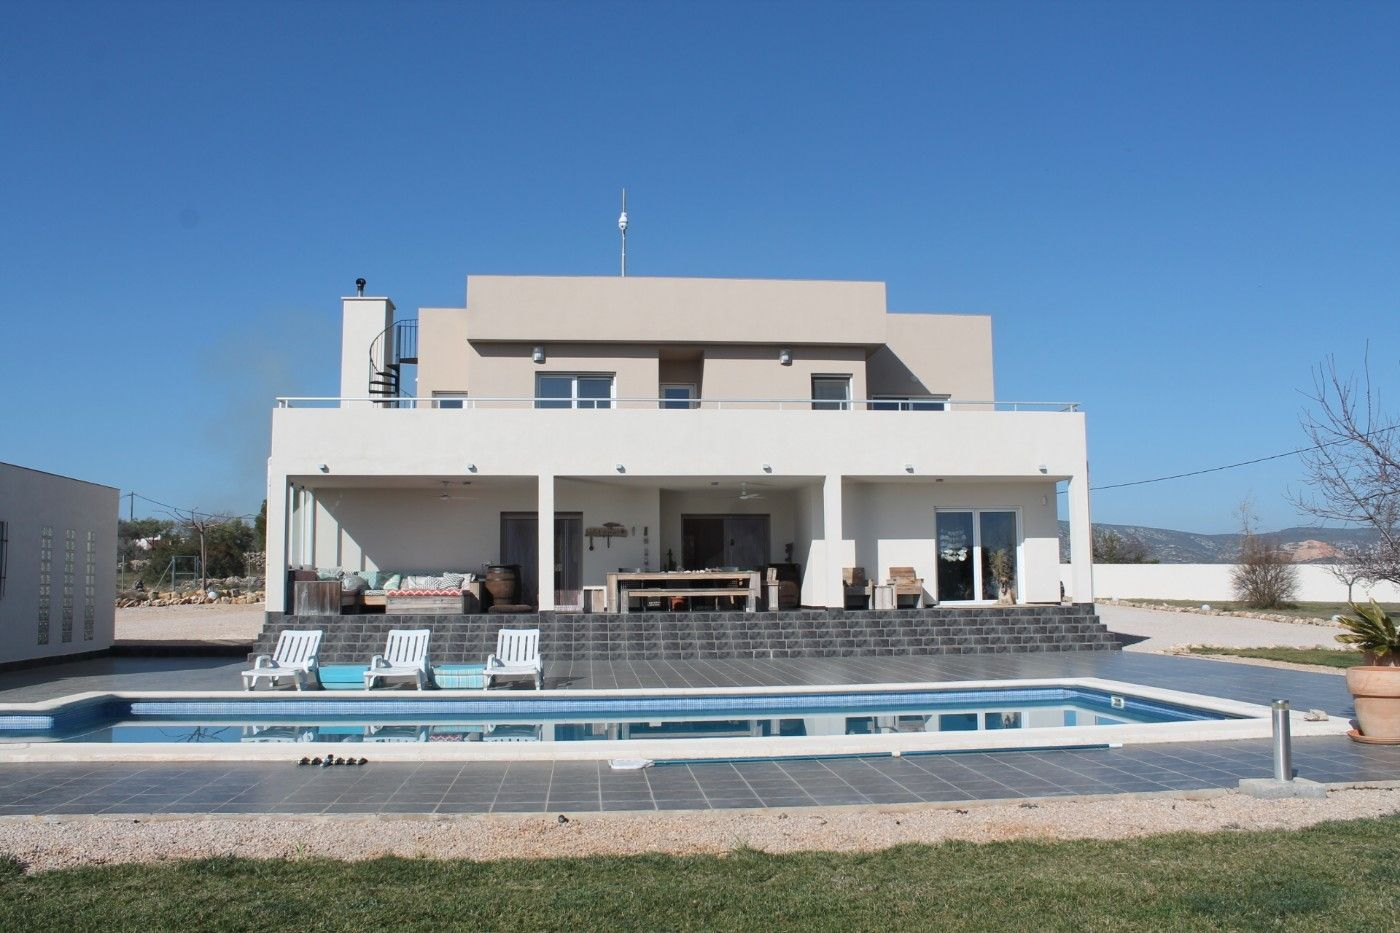 Chalet in Partida ullals, 4. Chalet moderno con piscina